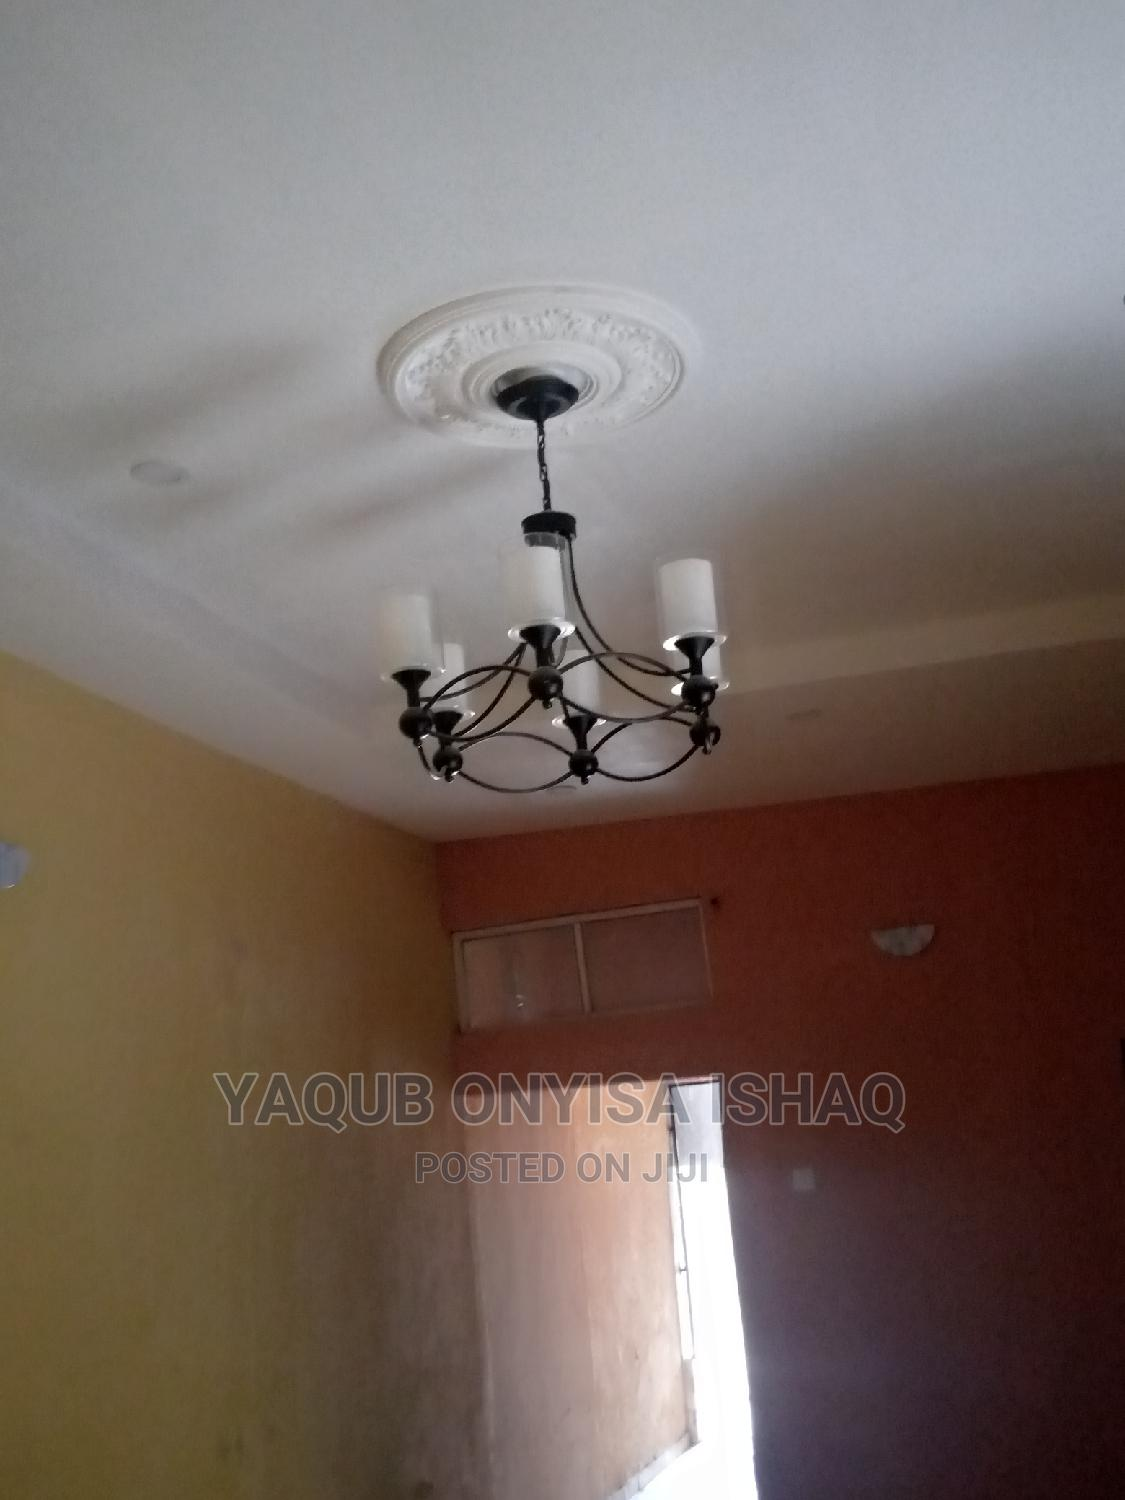 2 Bedrooms Bungalow for Rent in Police Quarter, Kubwa | Houses & Apartments For Rent for sale in Kubwa, Abuja (FCT) State, Nigeria